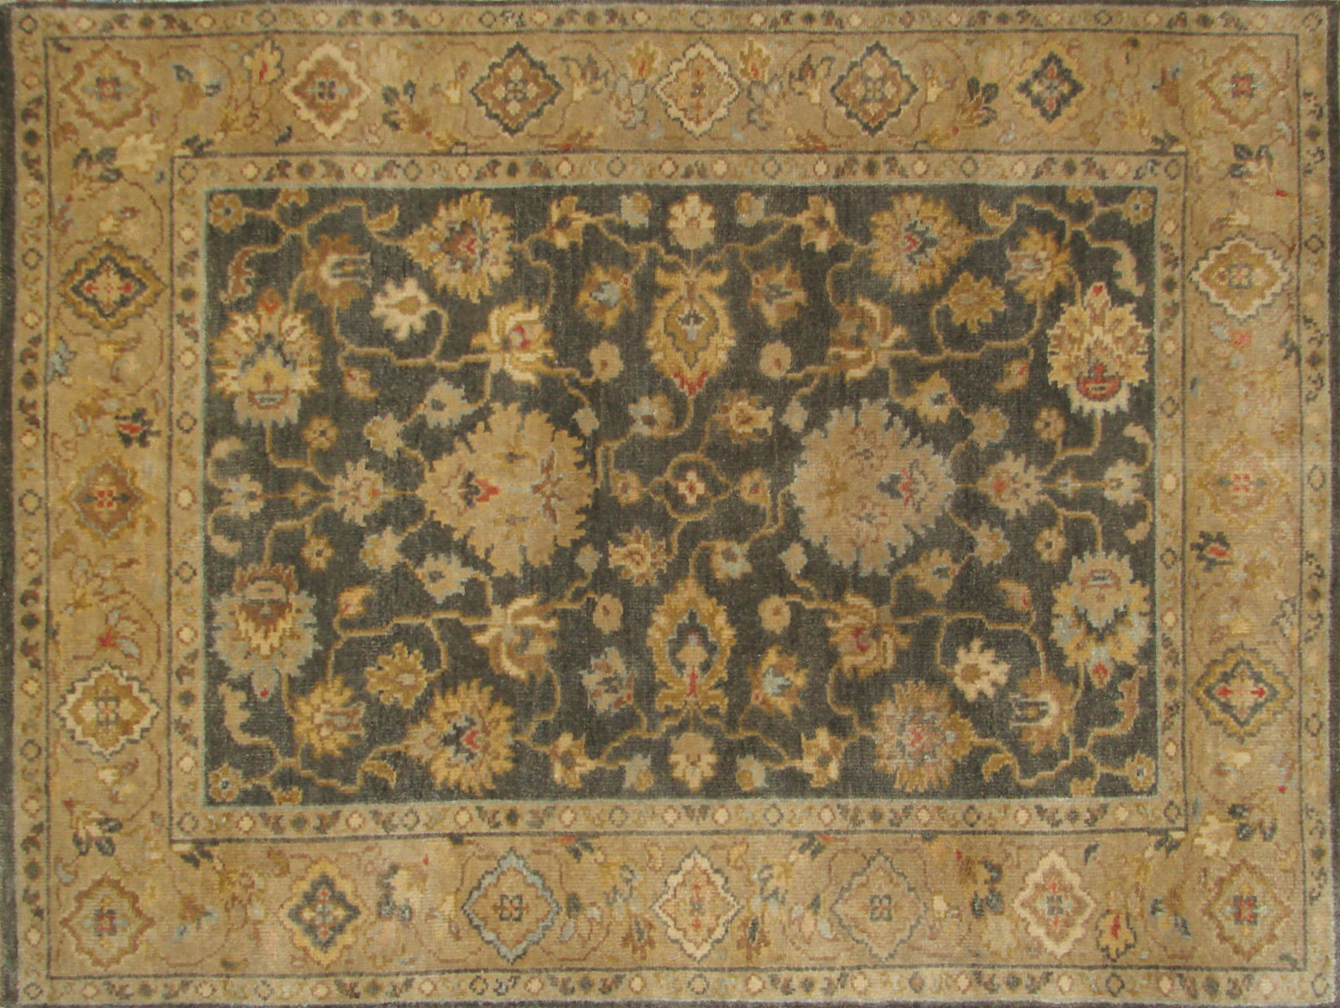 4x6 Traditional Hand Knotted Wool Area Rug - MR19923